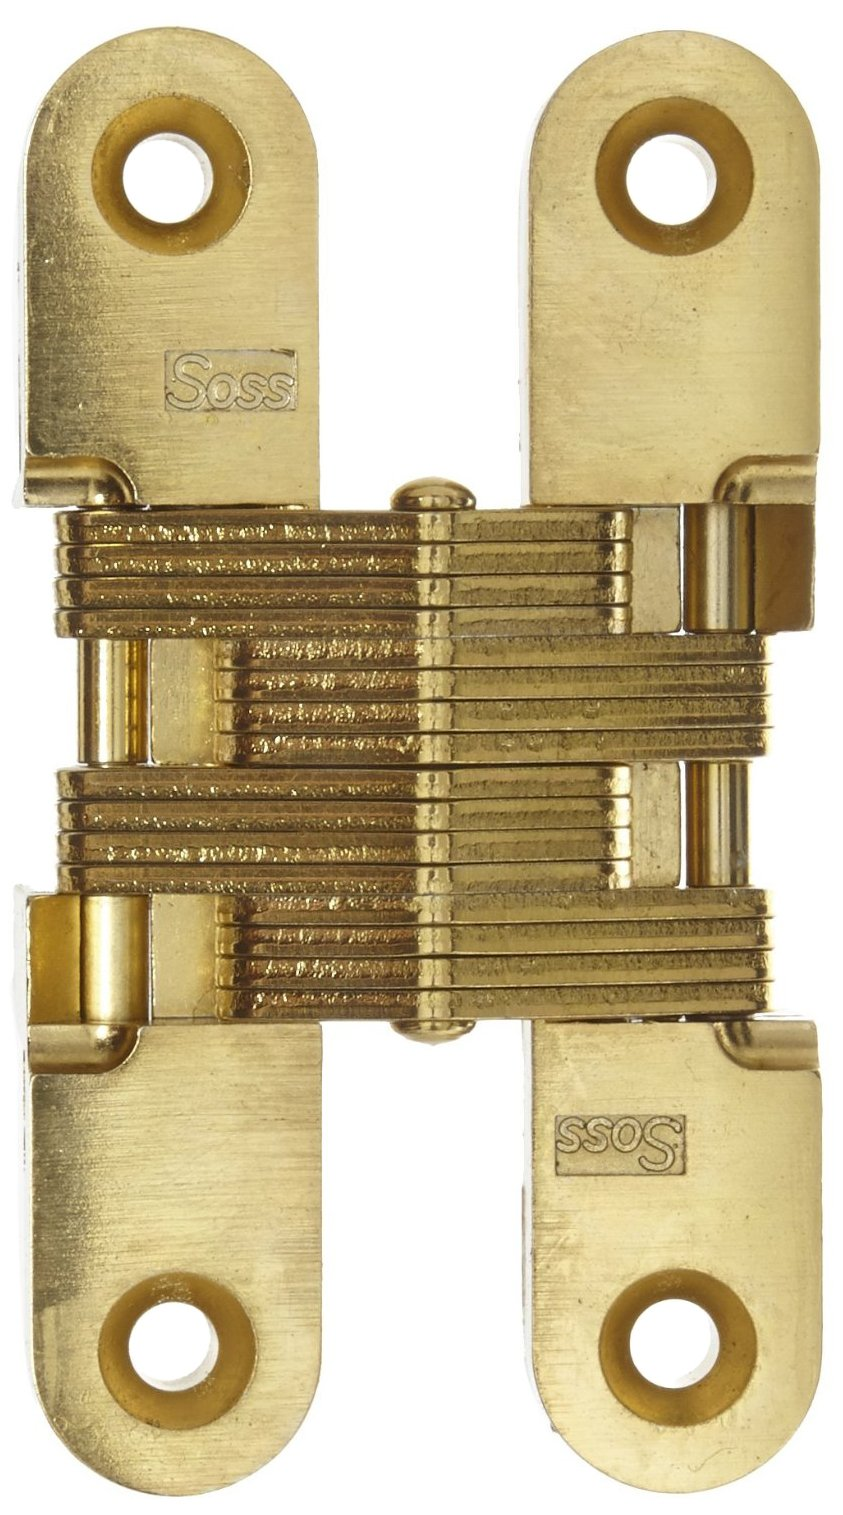 SOSS Mortise Mount Invisible Hinge with 4 Holes, Zinc, Satin Brass Finish, 2-3/8'' Leaf Height, 1/2'' Leaf Width, 23/32'' Leaf Thickness, 8-32 x 5/8'' Screw Size (1 Pair)